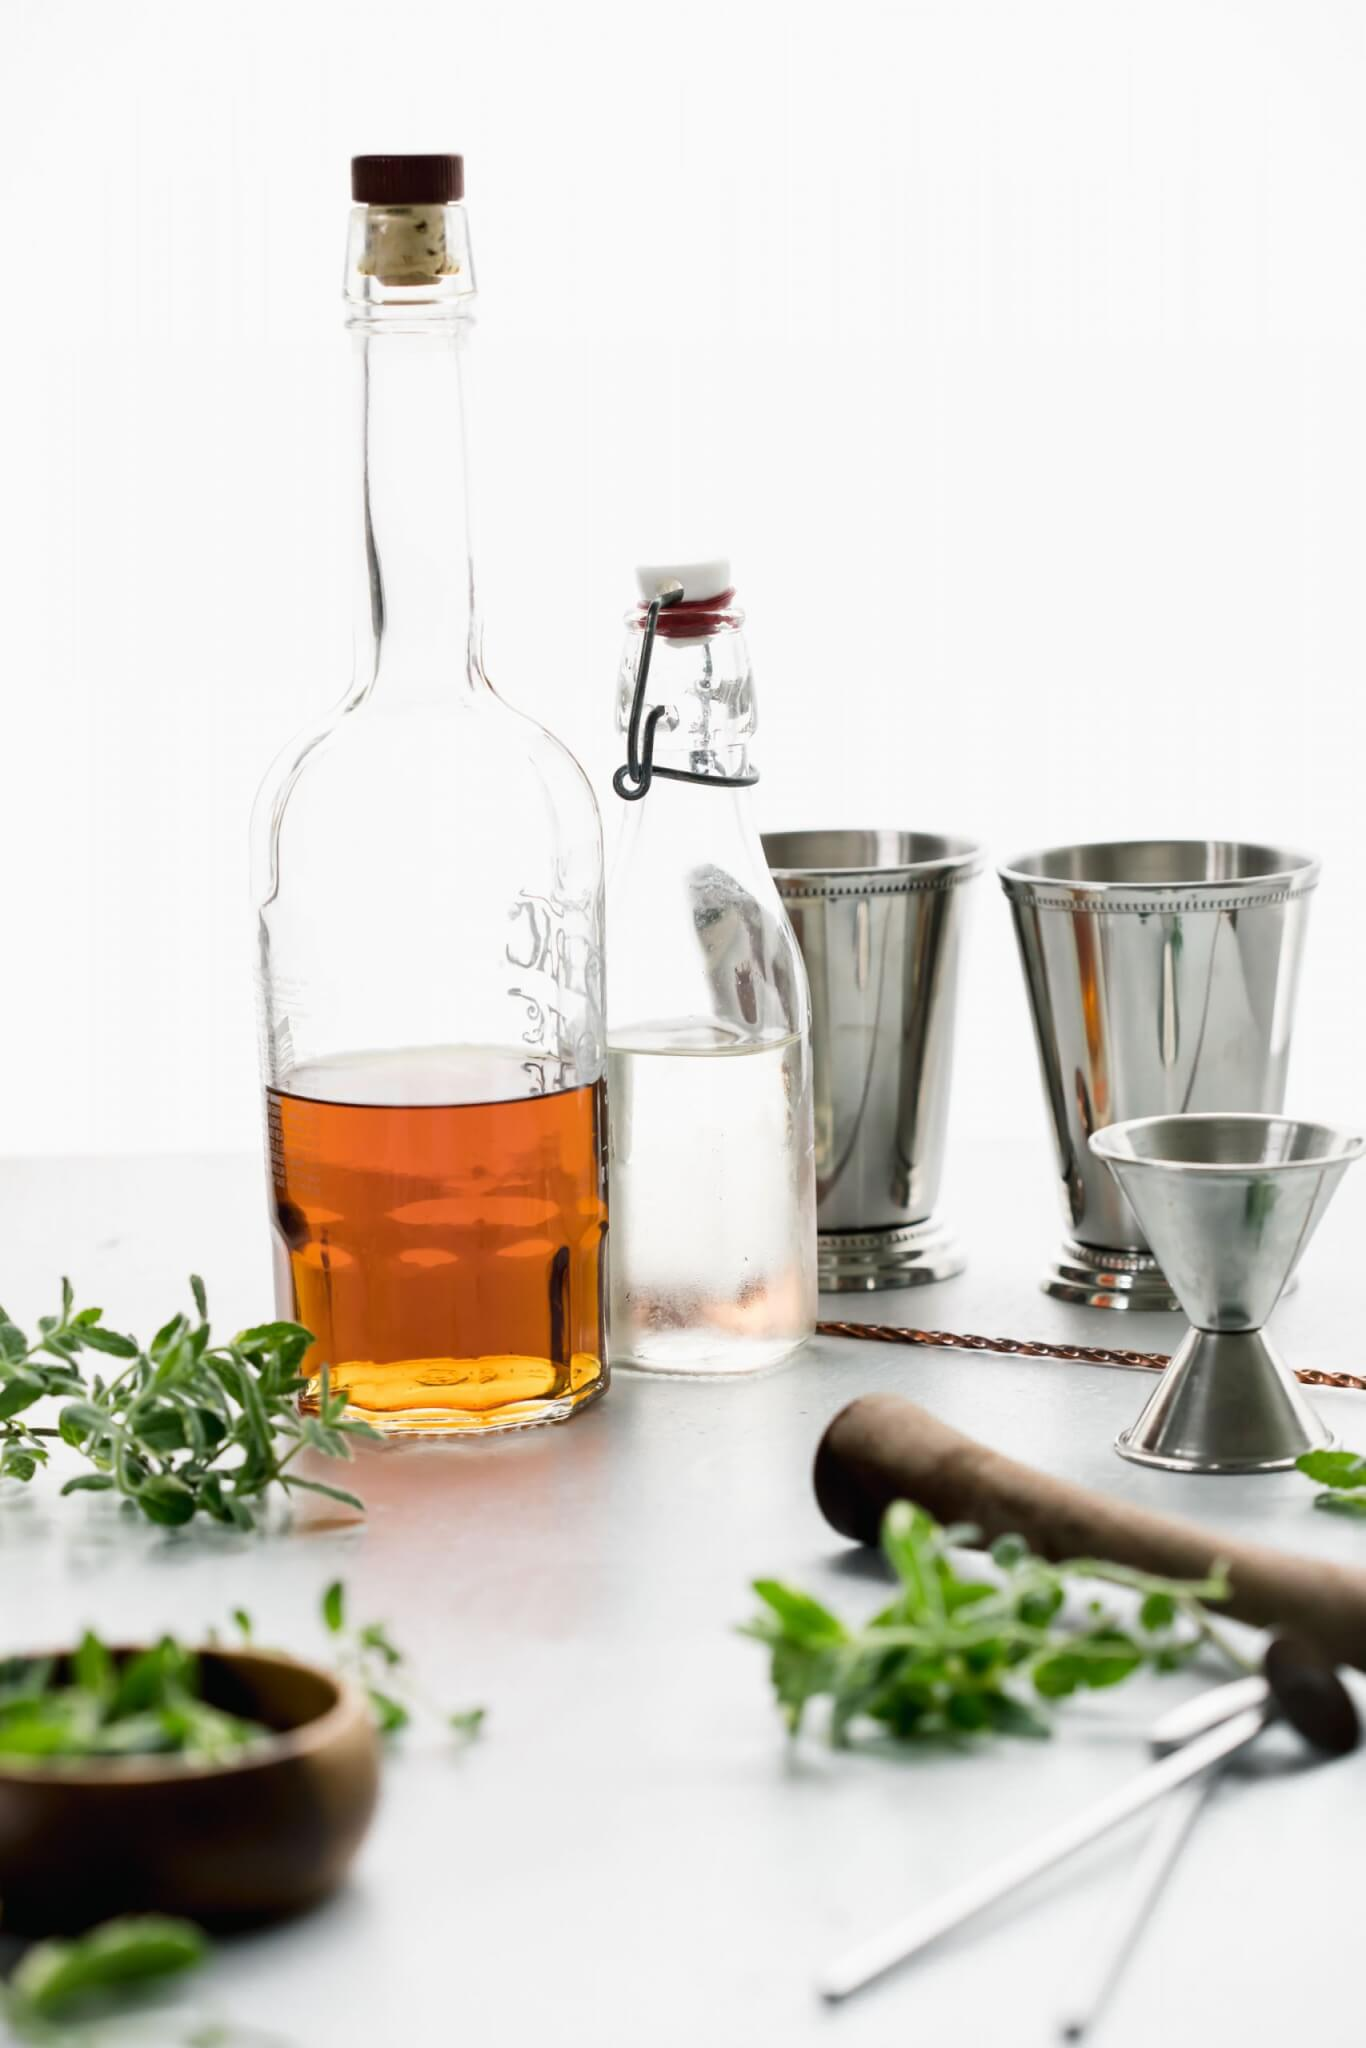 Ingredients for mint julep recipe laid out on countertop